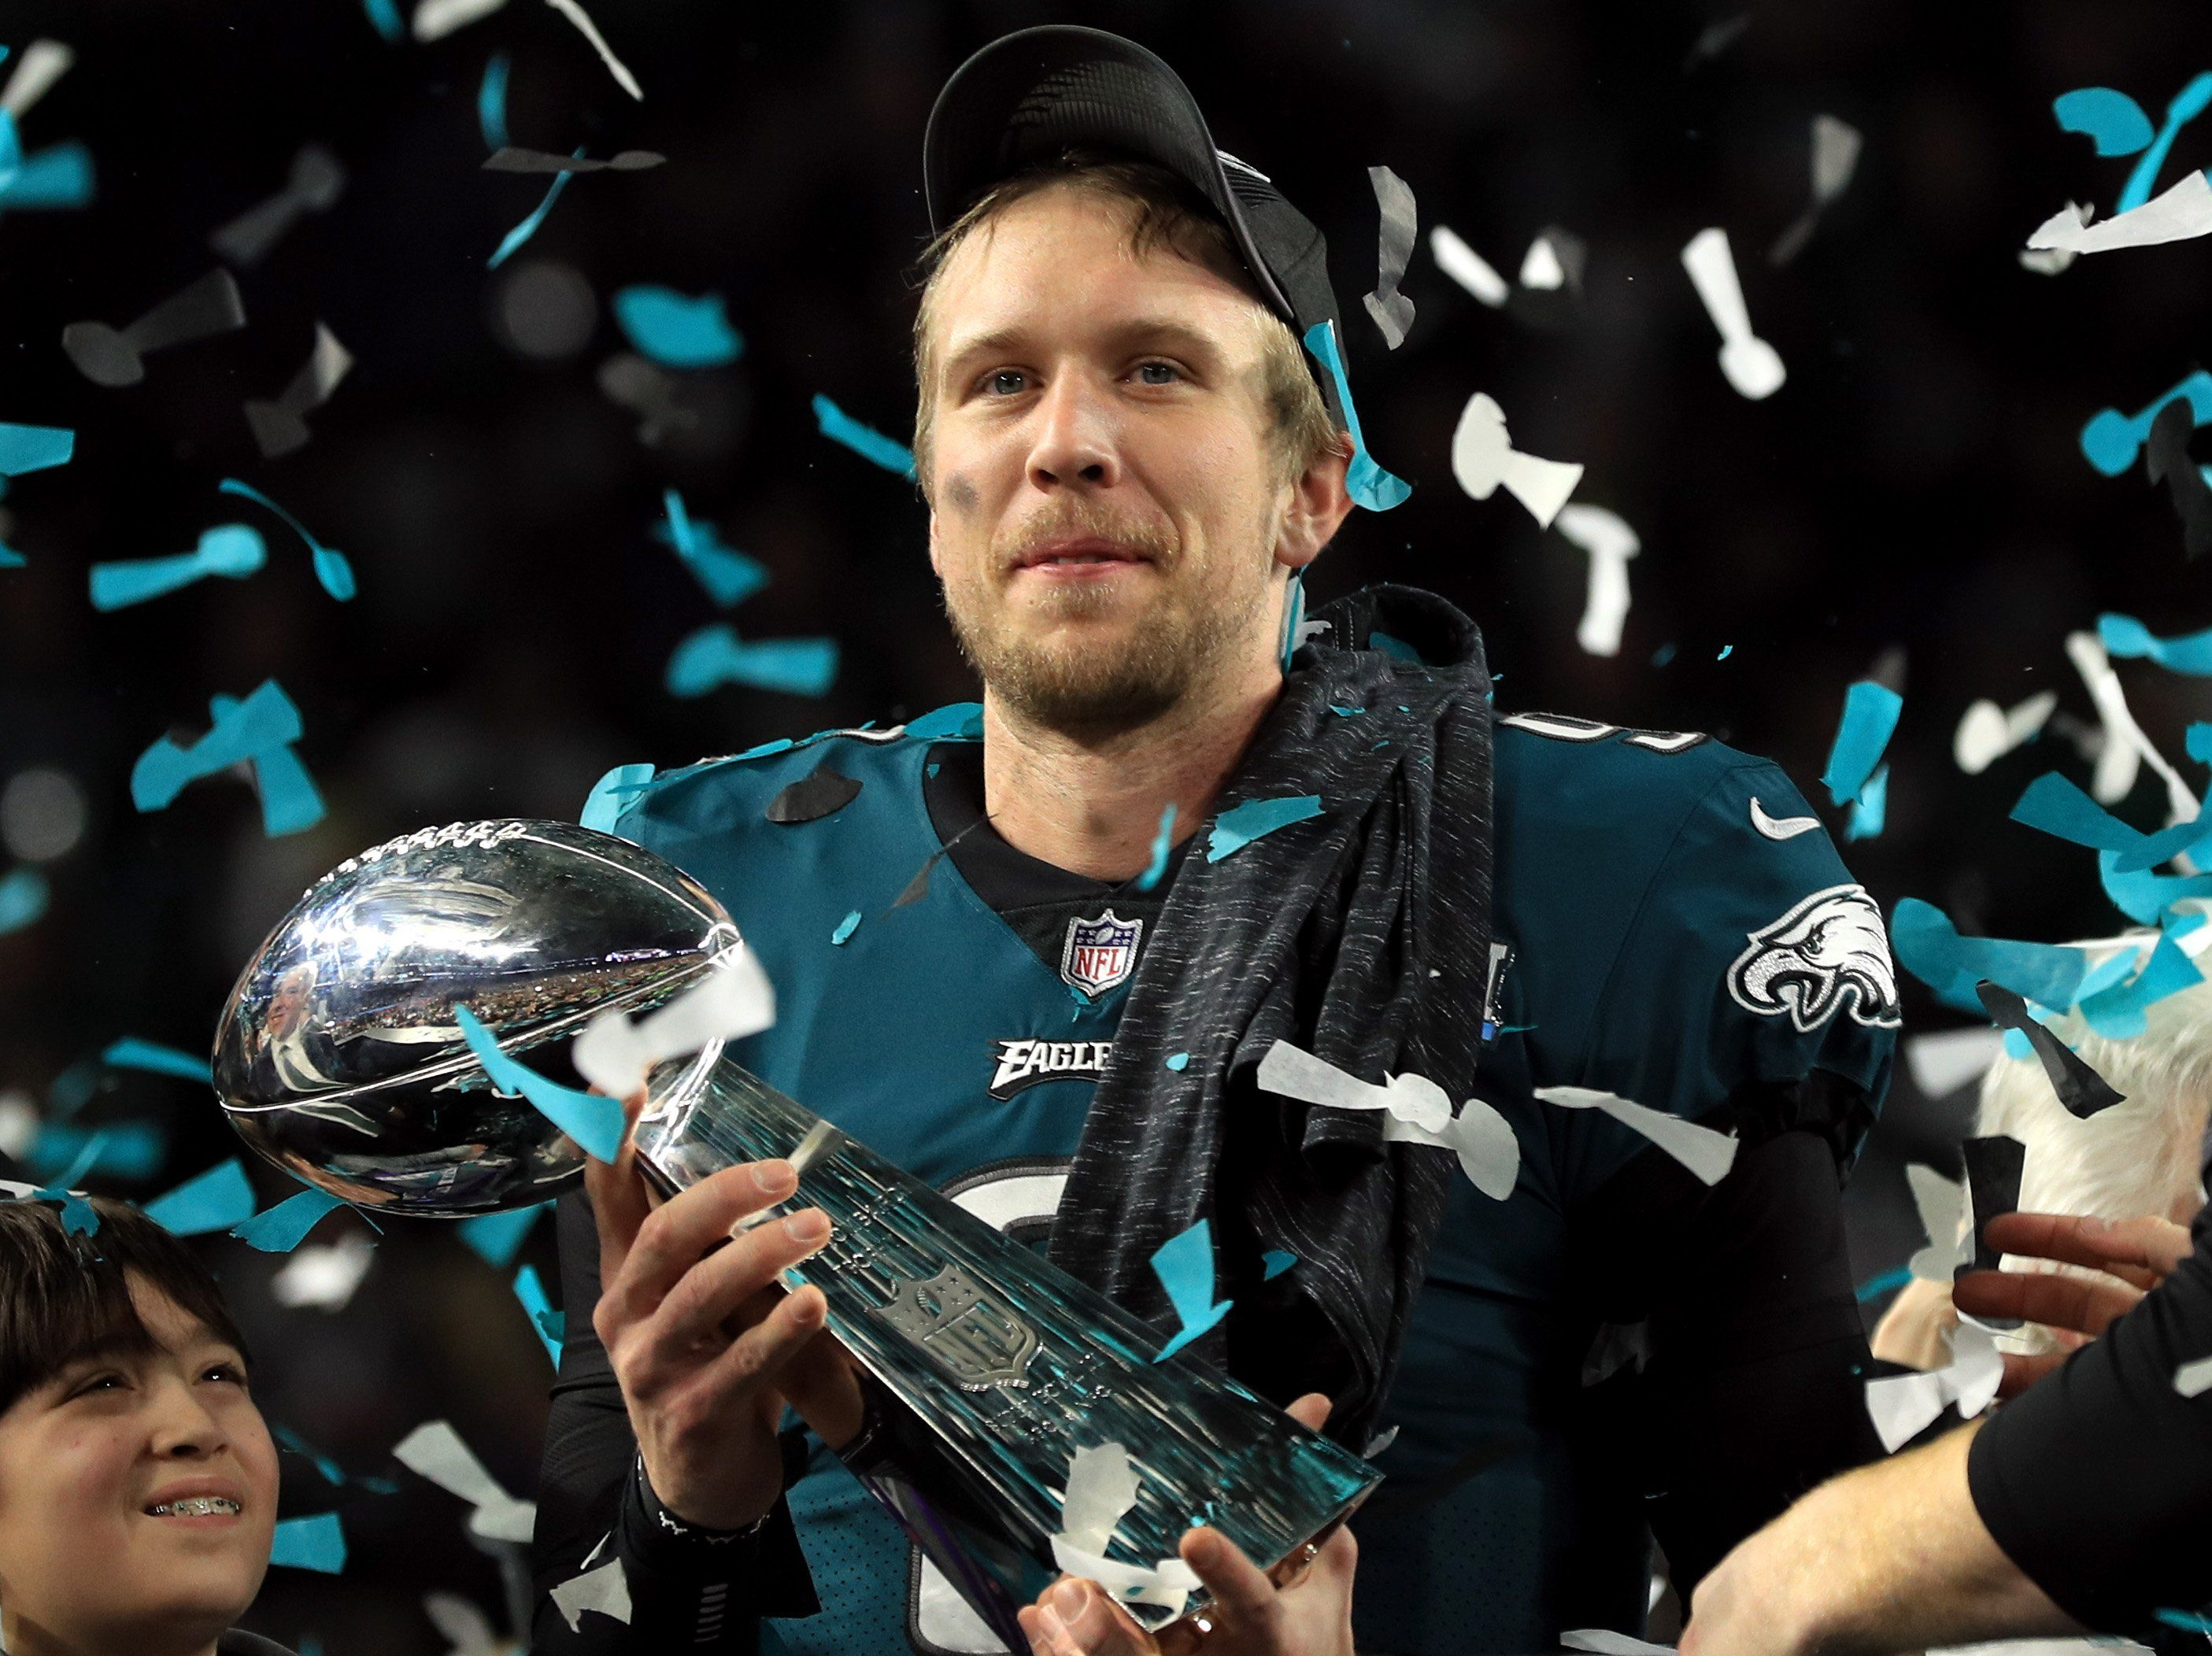 Here S How Much Nick Foles Will Make For Winning The Super Bowl Super Bowl Eagles Philadelphia History